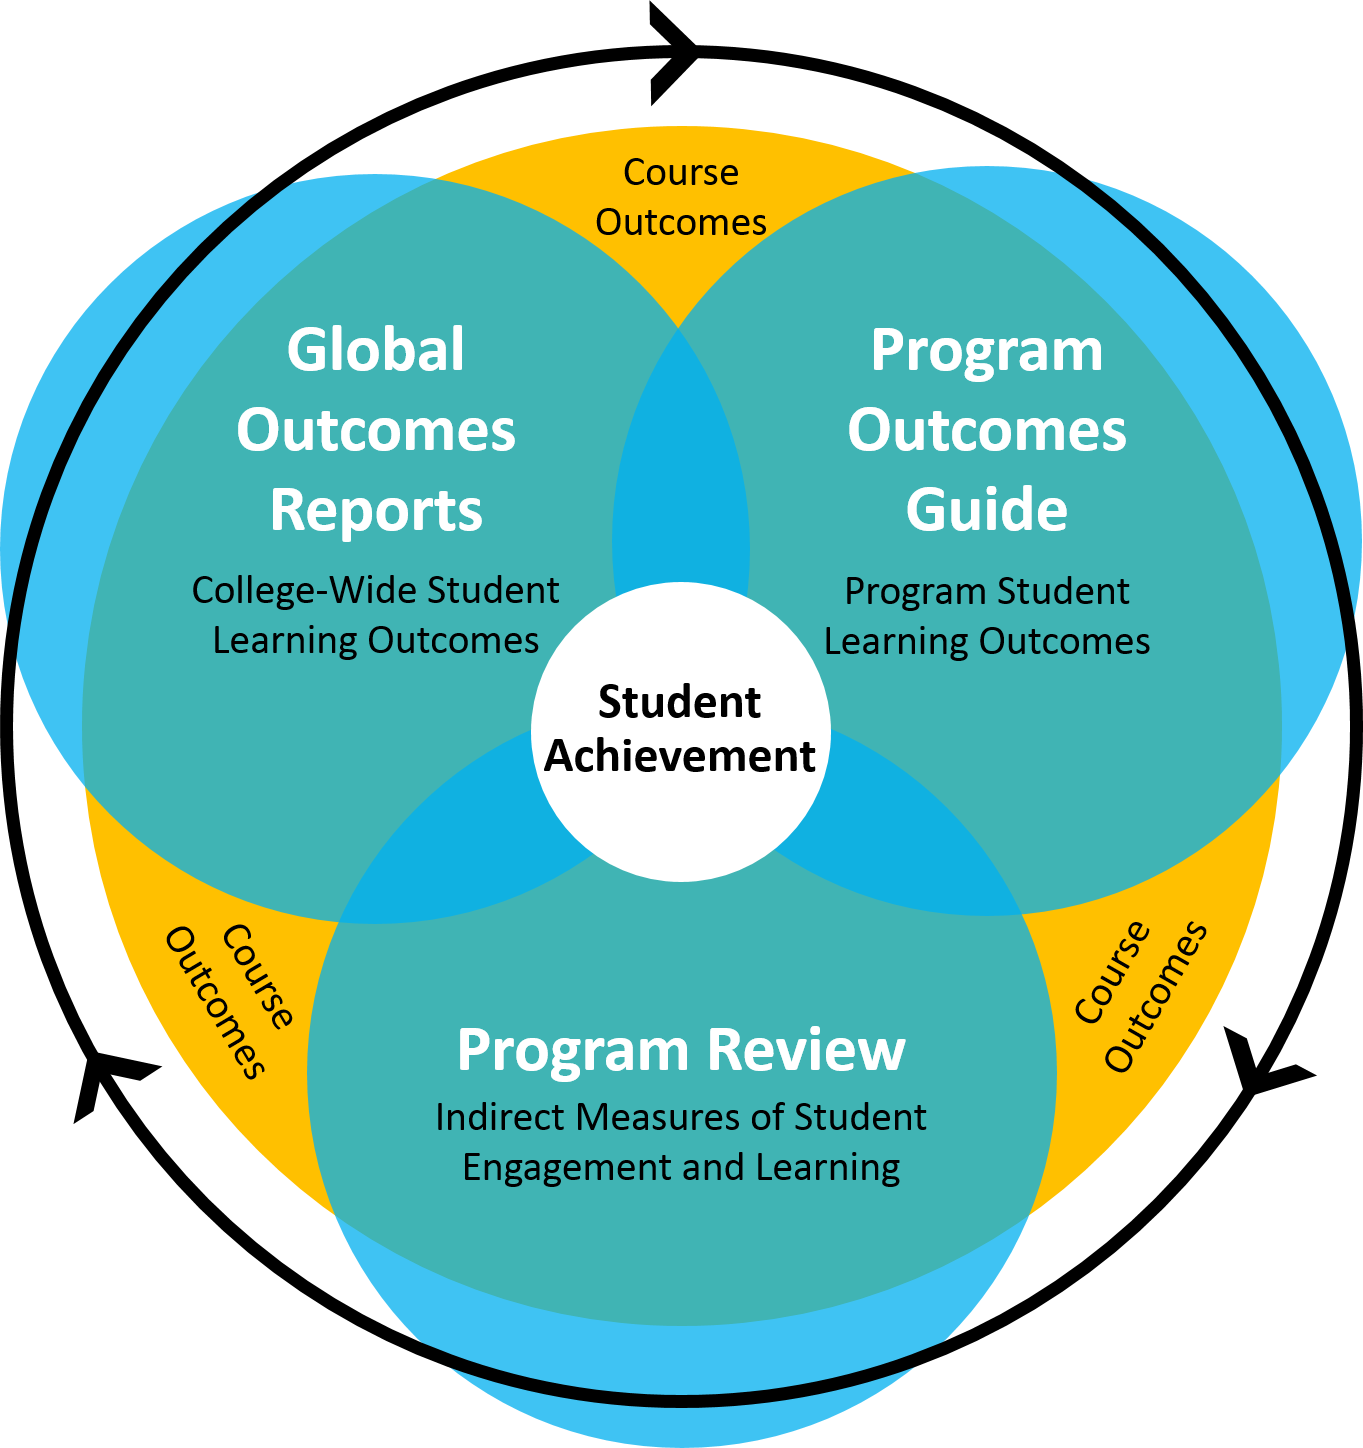 Image of relationships among the learning outcomes assessment processes at LWTech. Includes Global Outocmes, Program Outcomes, and Program Review, with course outcomes included with each and all three overlapping. Student Achievement is at the center.